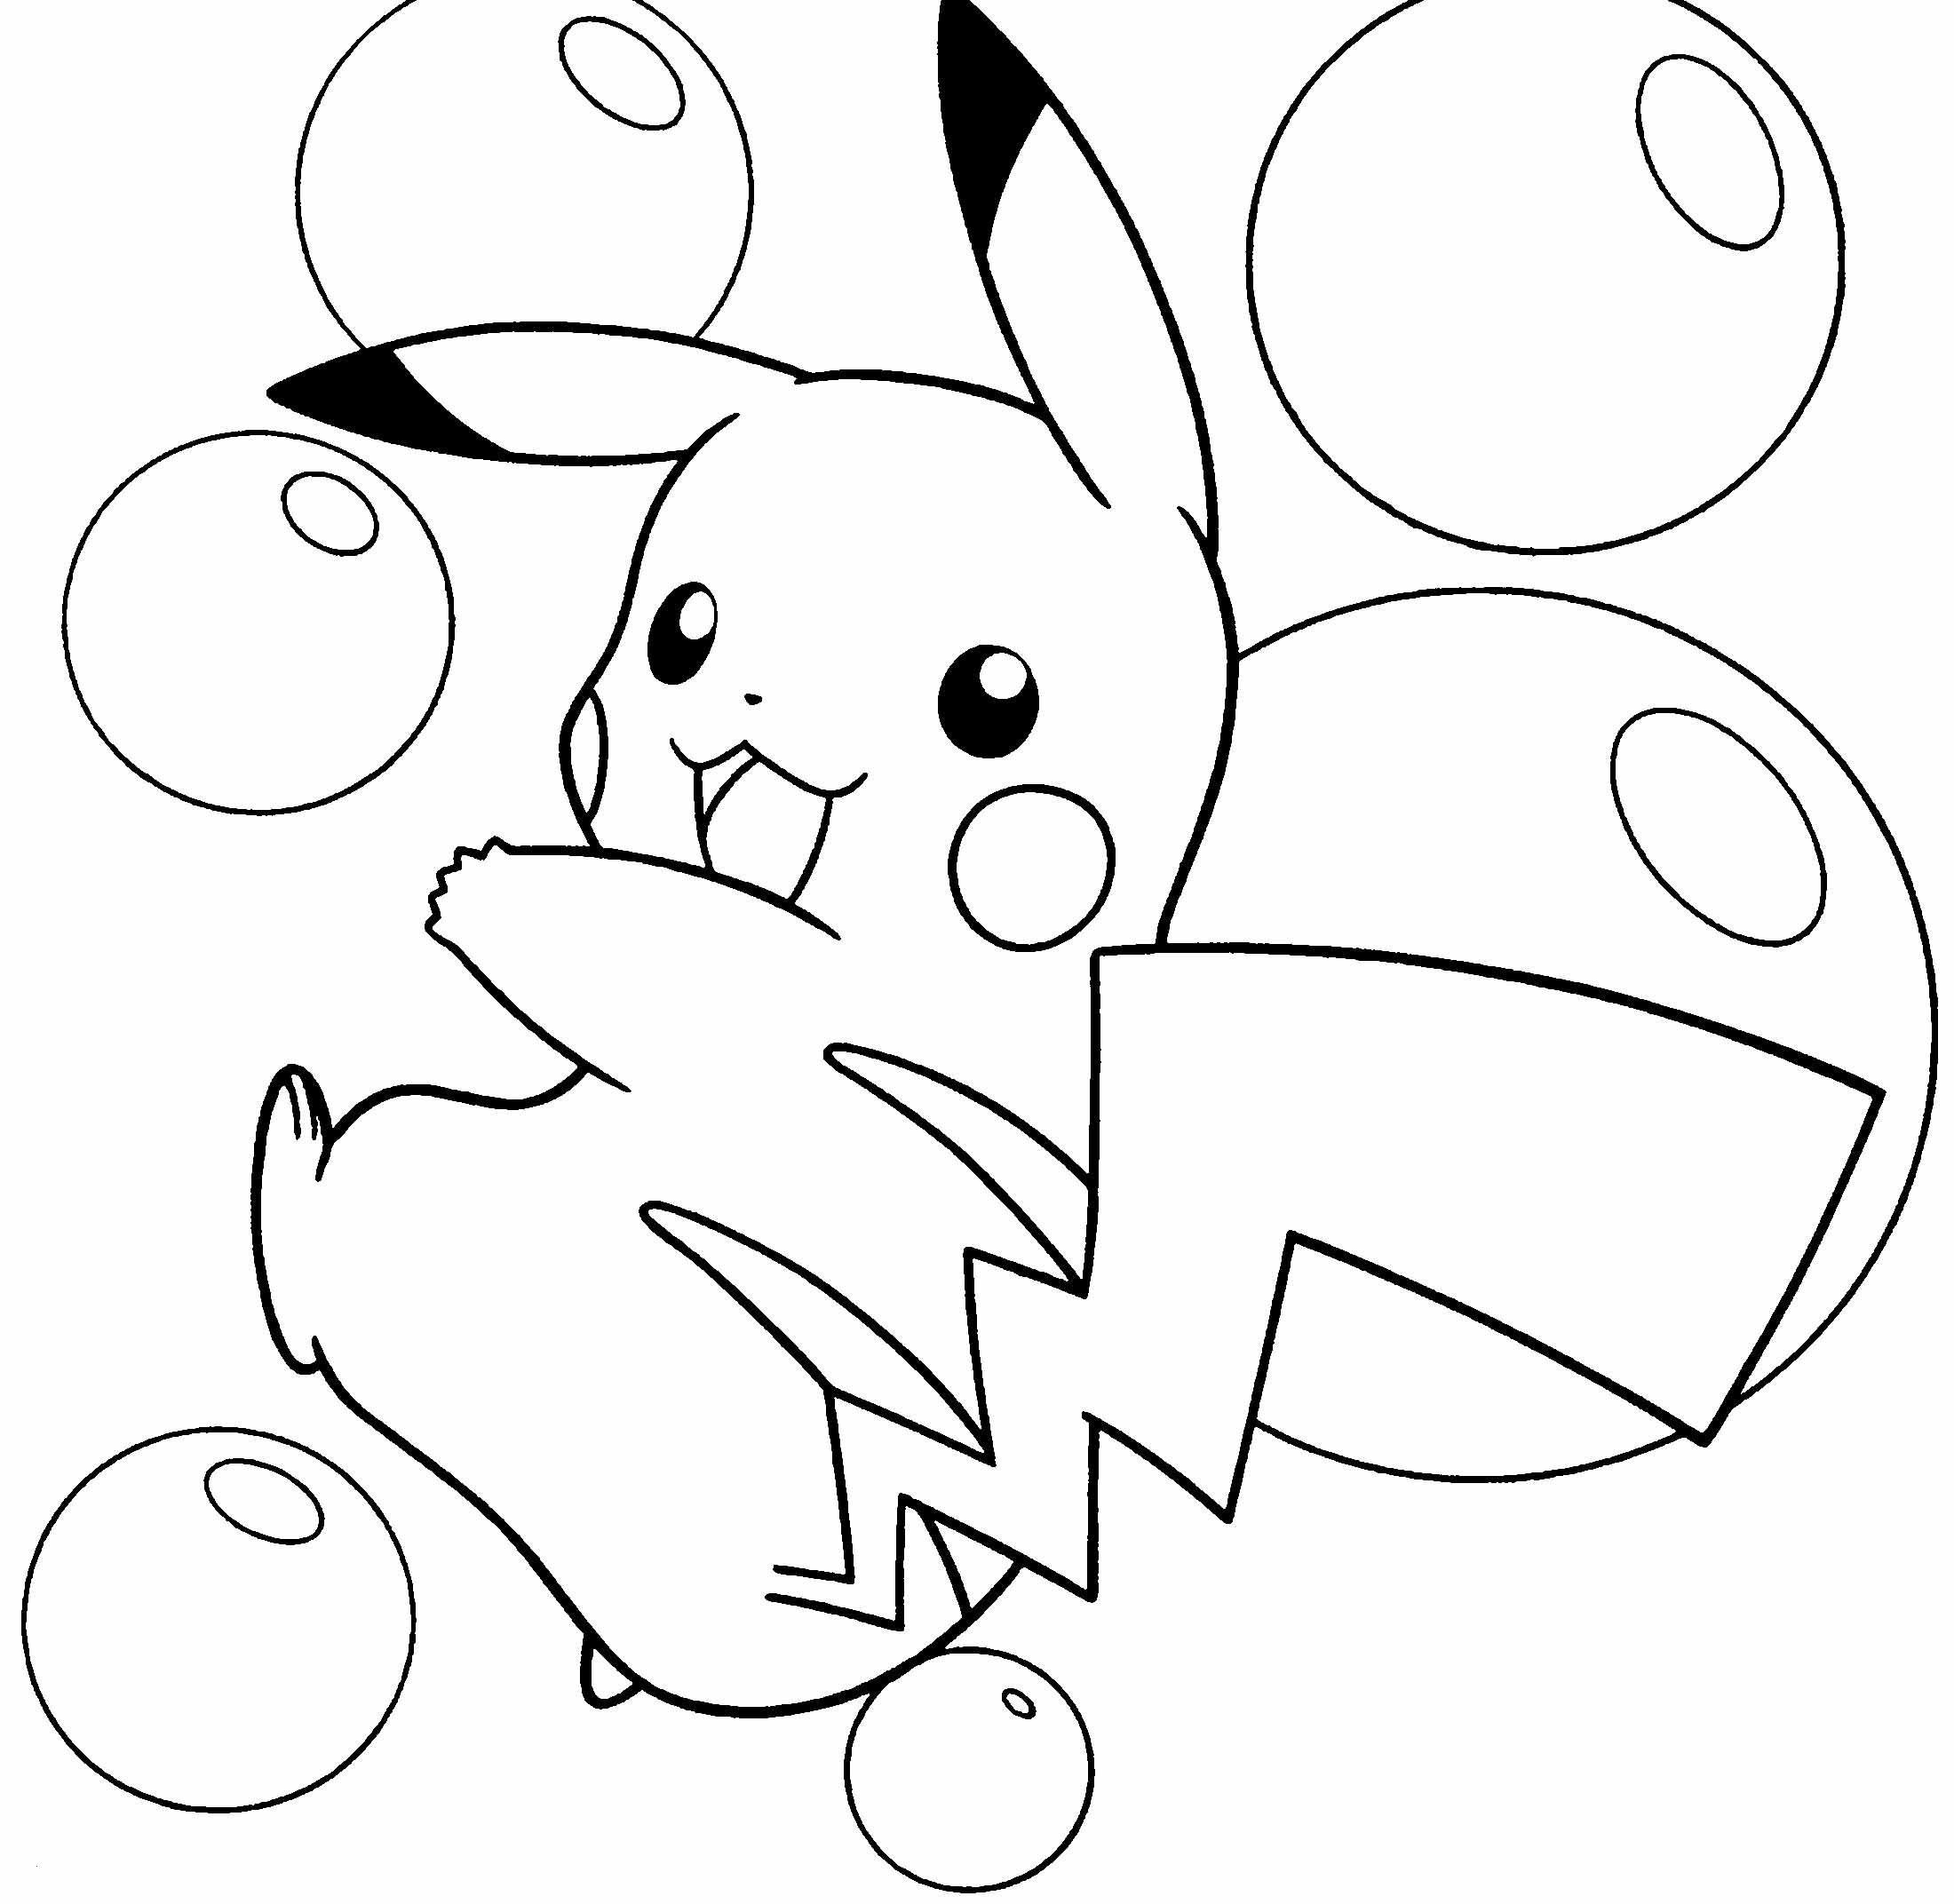 pikachu coloring pages Collection-Pikachu Coloring Pages Free Frisch Pokeball Ausmalbilder 9-k